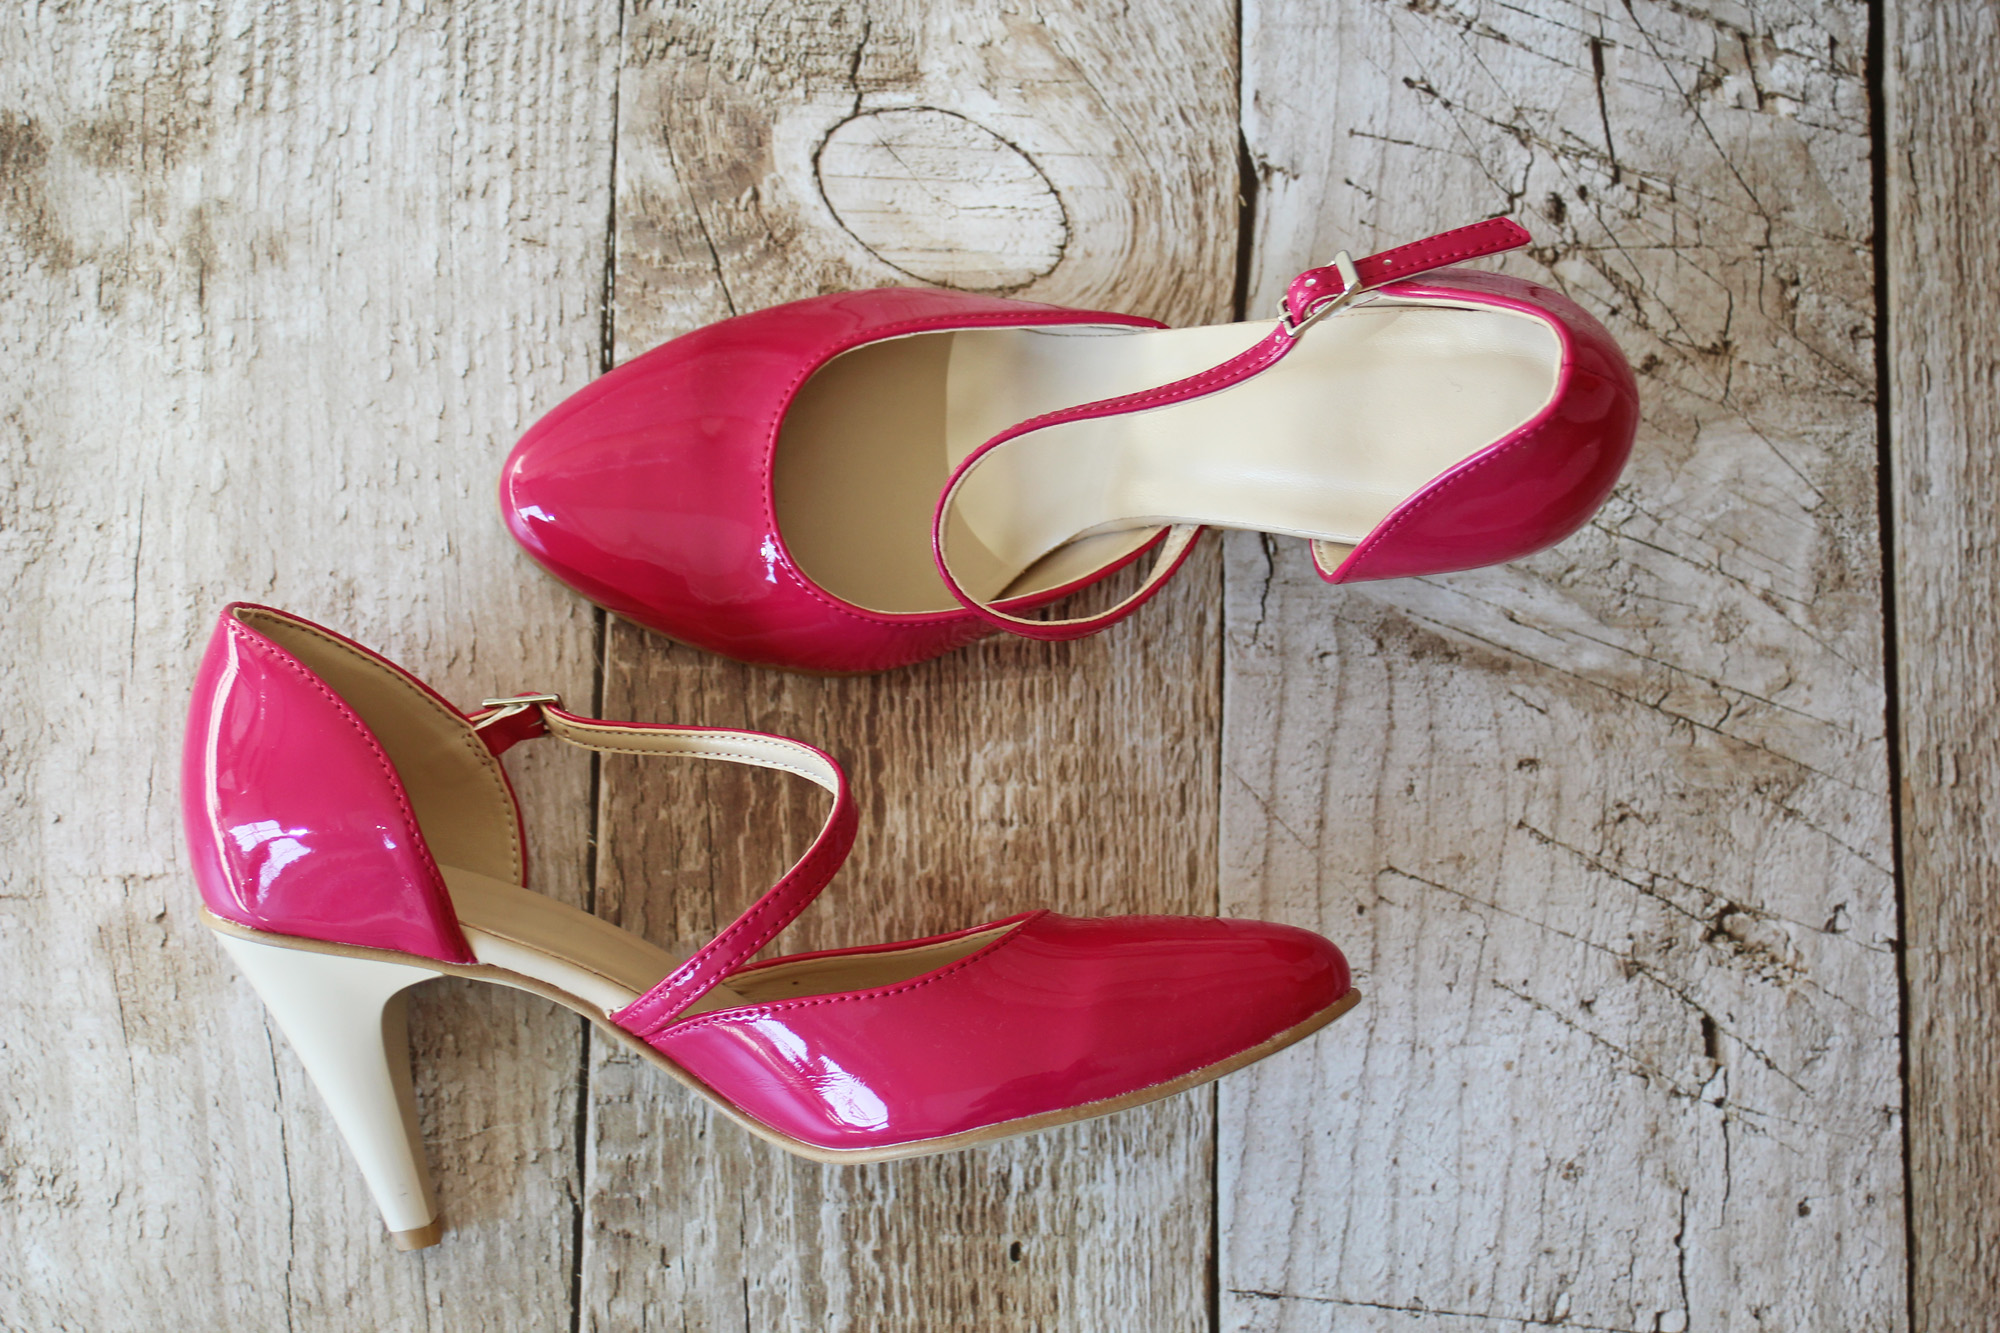 new product 4773e feaa1 Brautschuhe in Pink Fuchsia hoher Absatz andere Farben ...